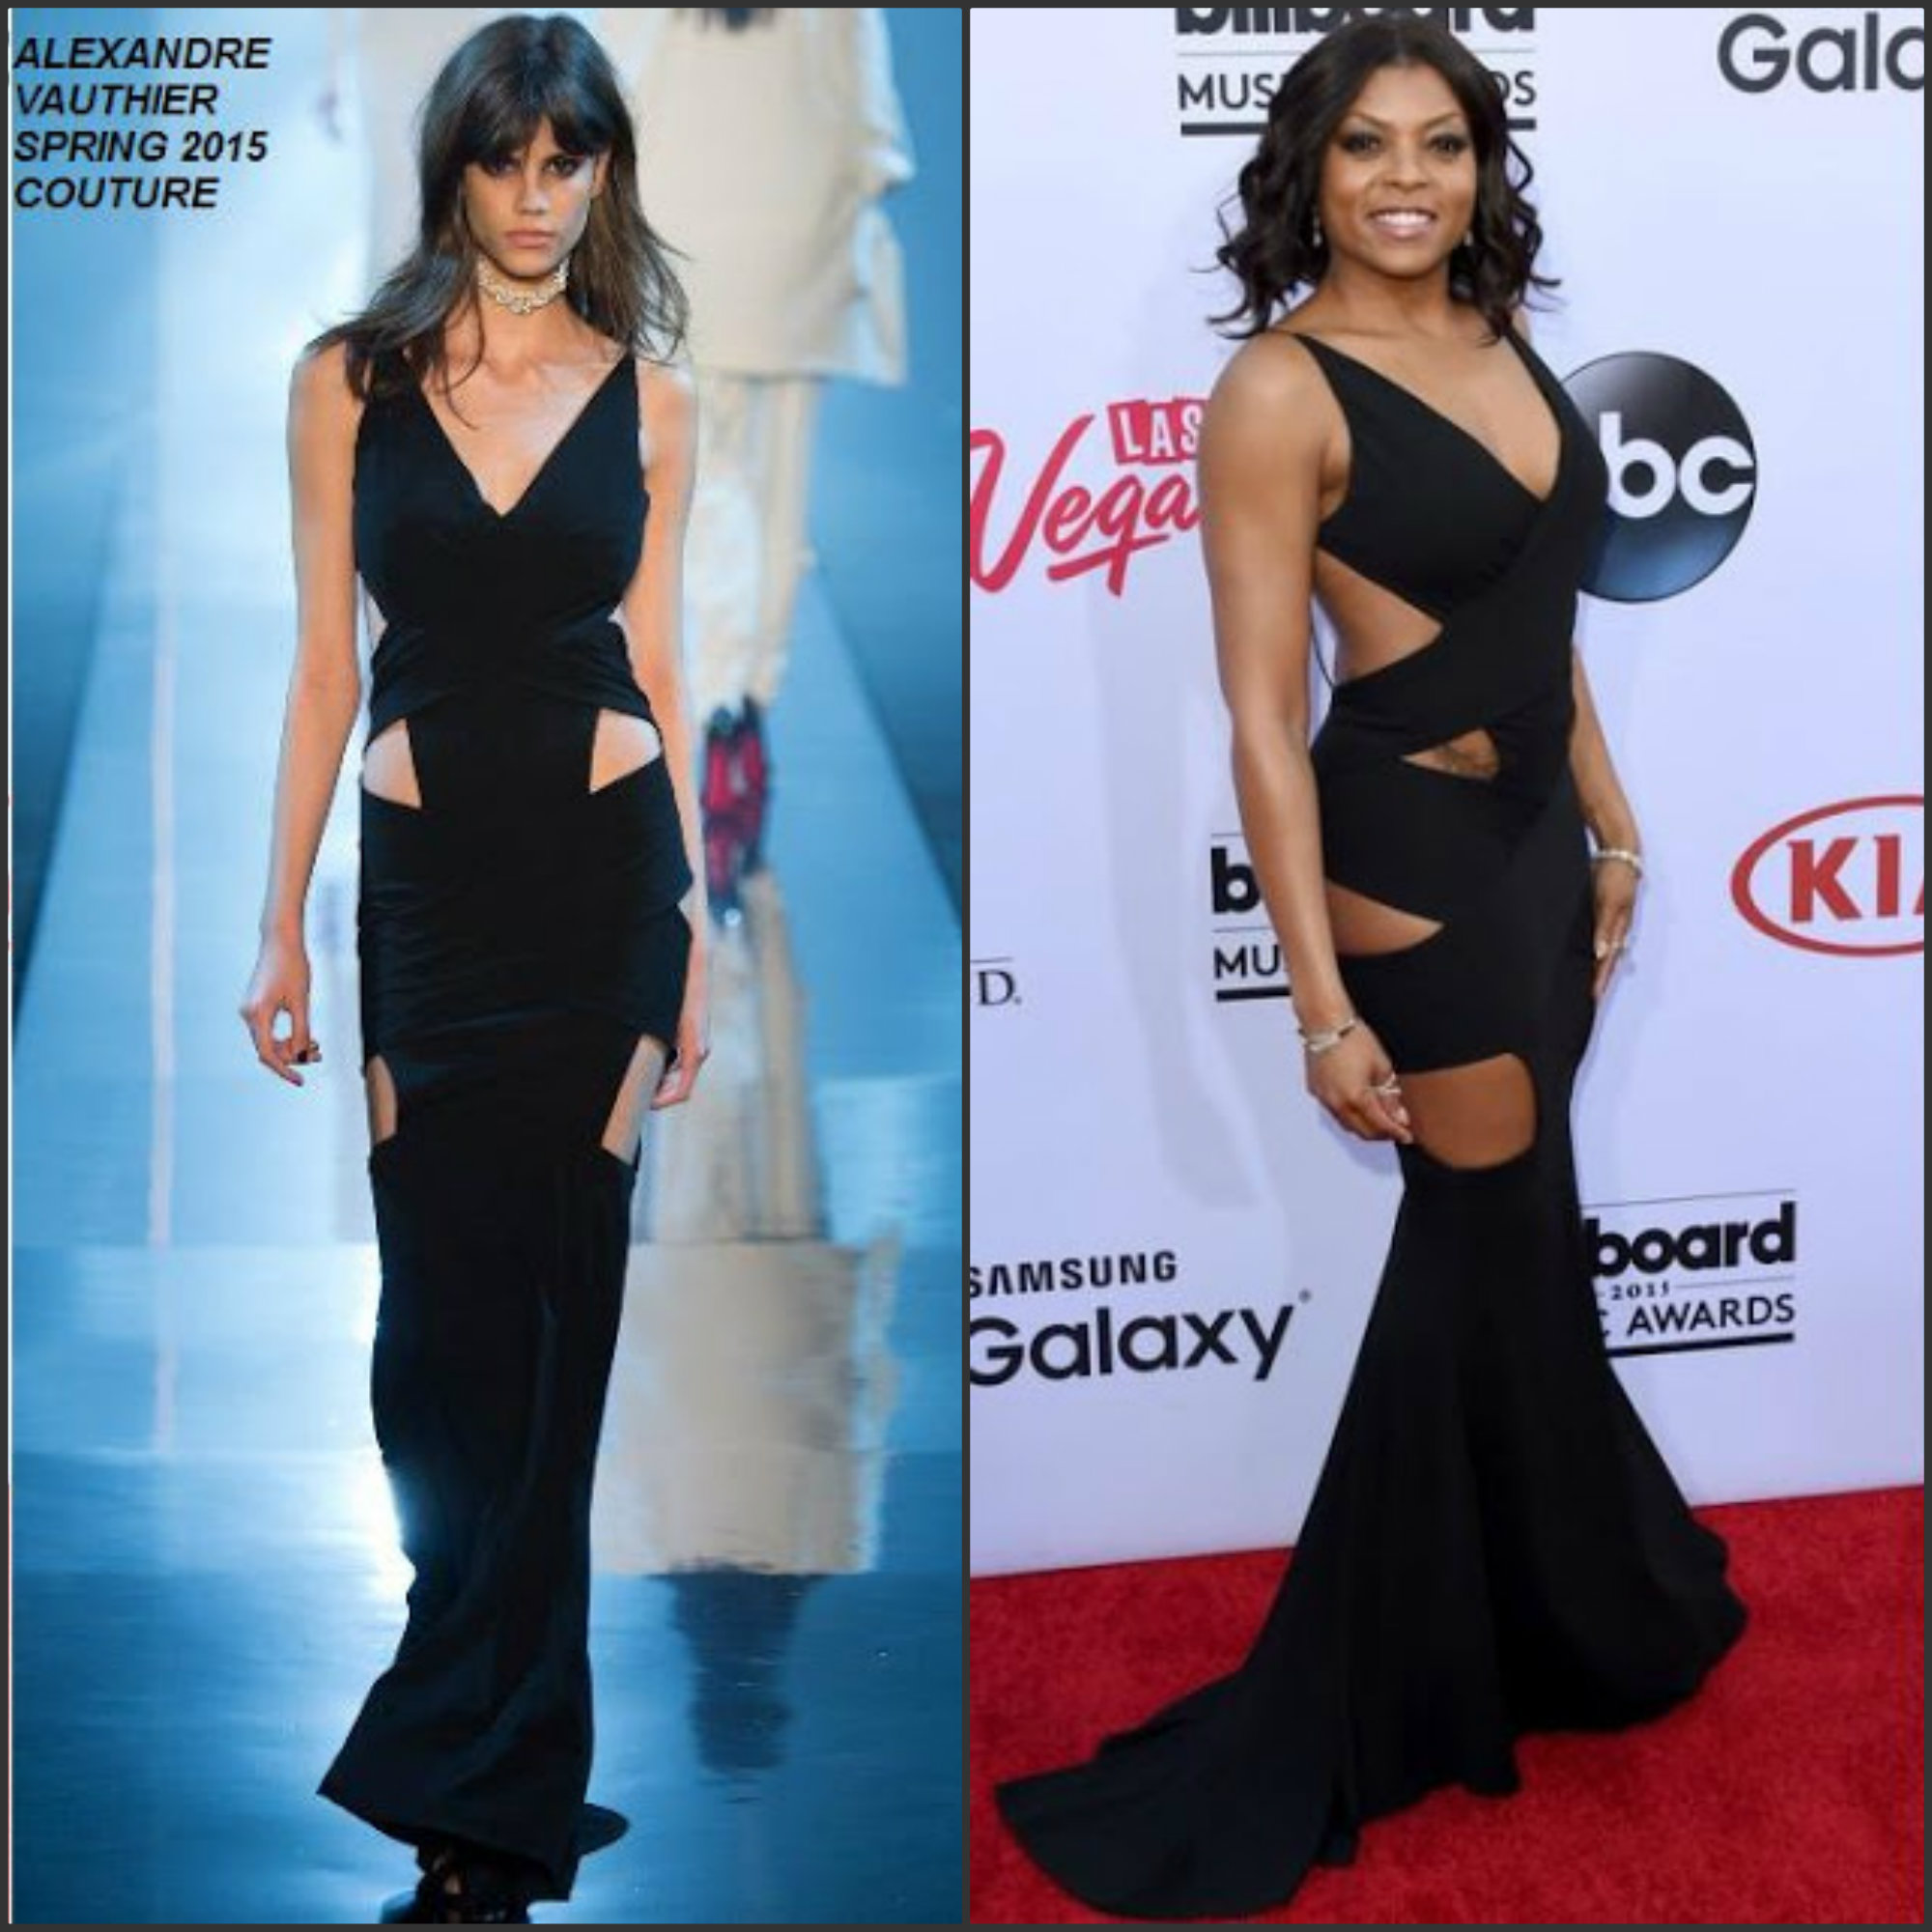 taraji-p-henson-in-alexandre-vauther-couture-at-the-2015-billboard-music-awards